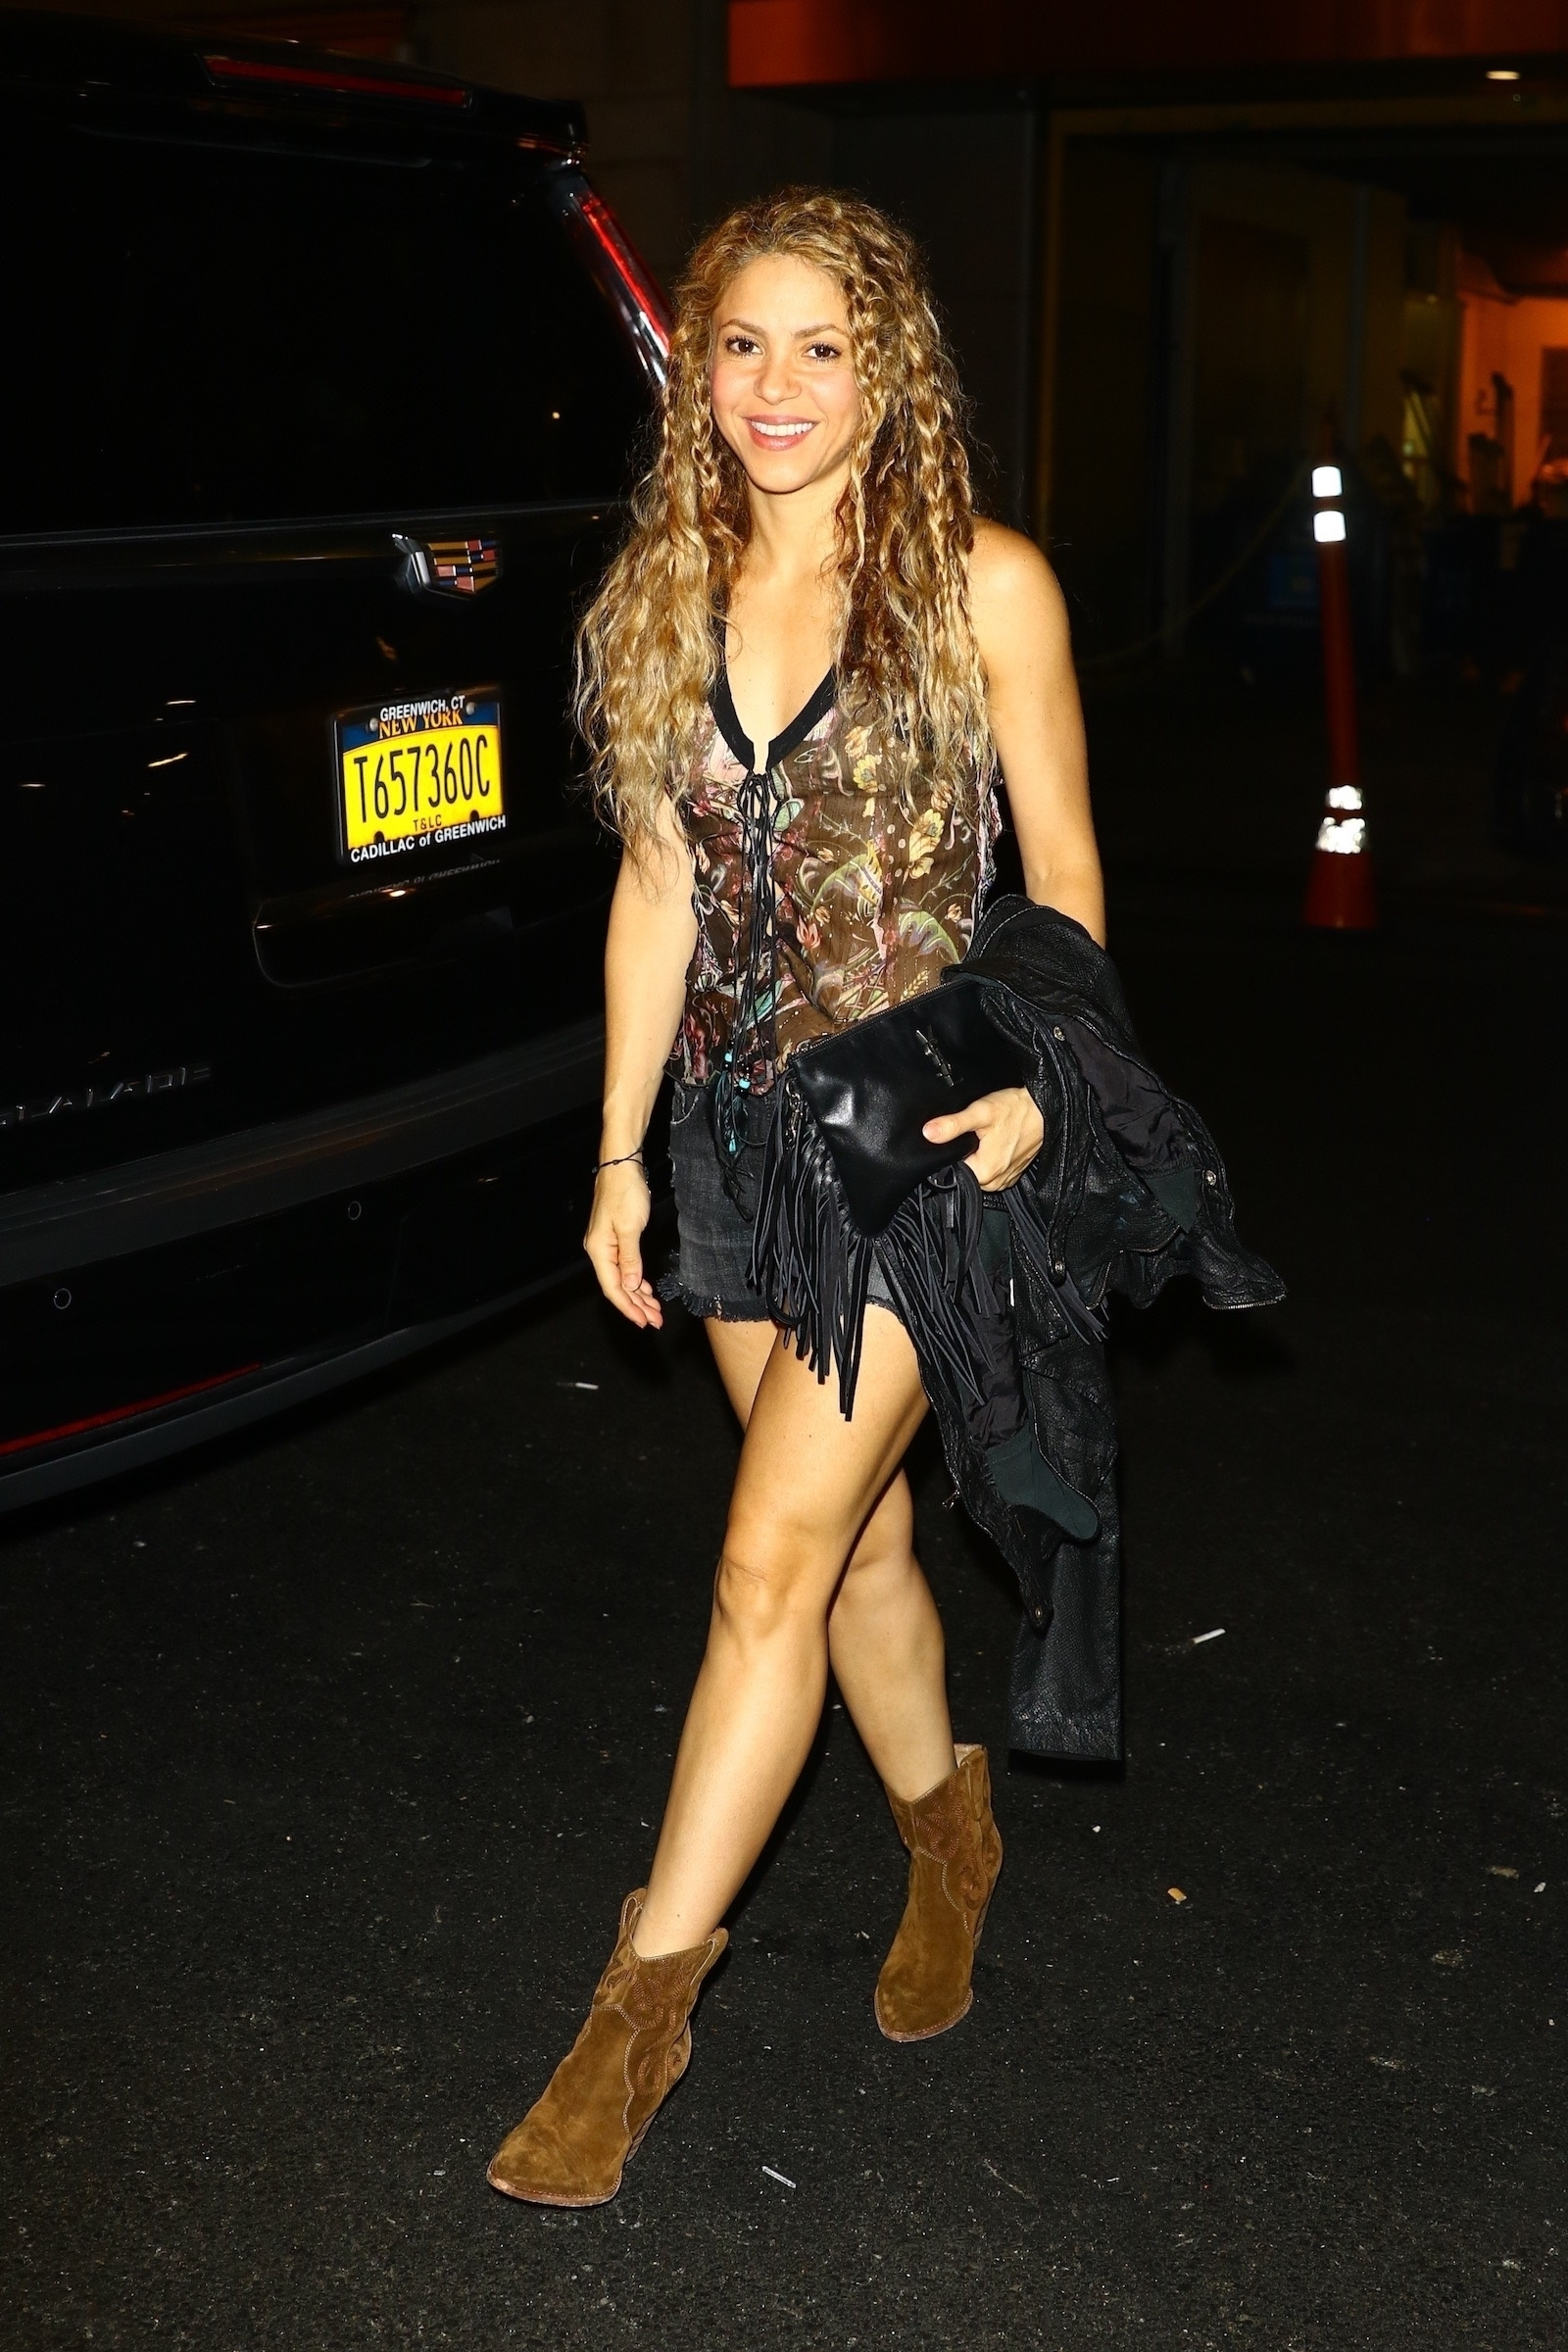 78215188_shakira-in-new-york-20180809-1.jpg